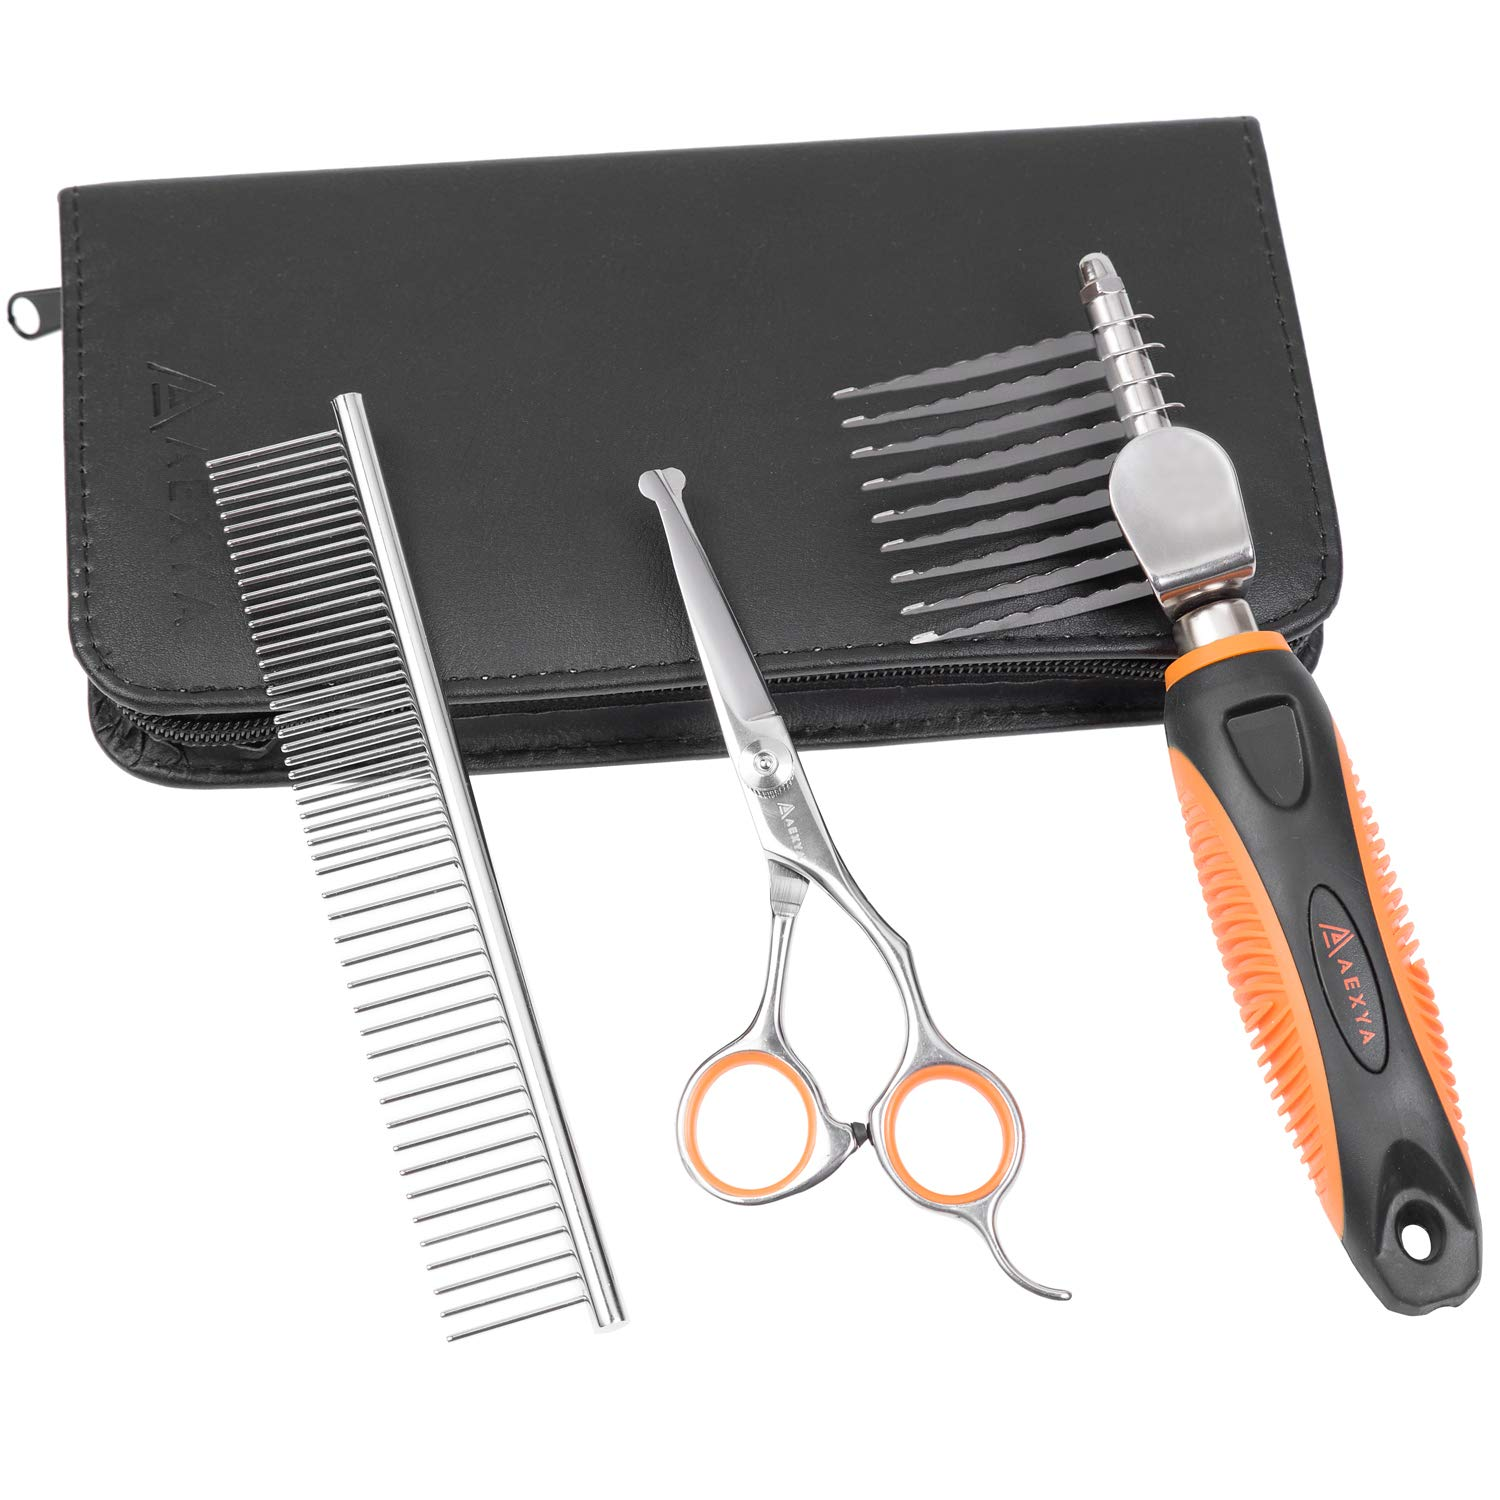 AEXYA - Premium Dog Dematting Tools Comb Scissors Set - Undercoat Tangles Deshedding Tool for Cats and Dogs – Safe and Easy Mats Remover Rake